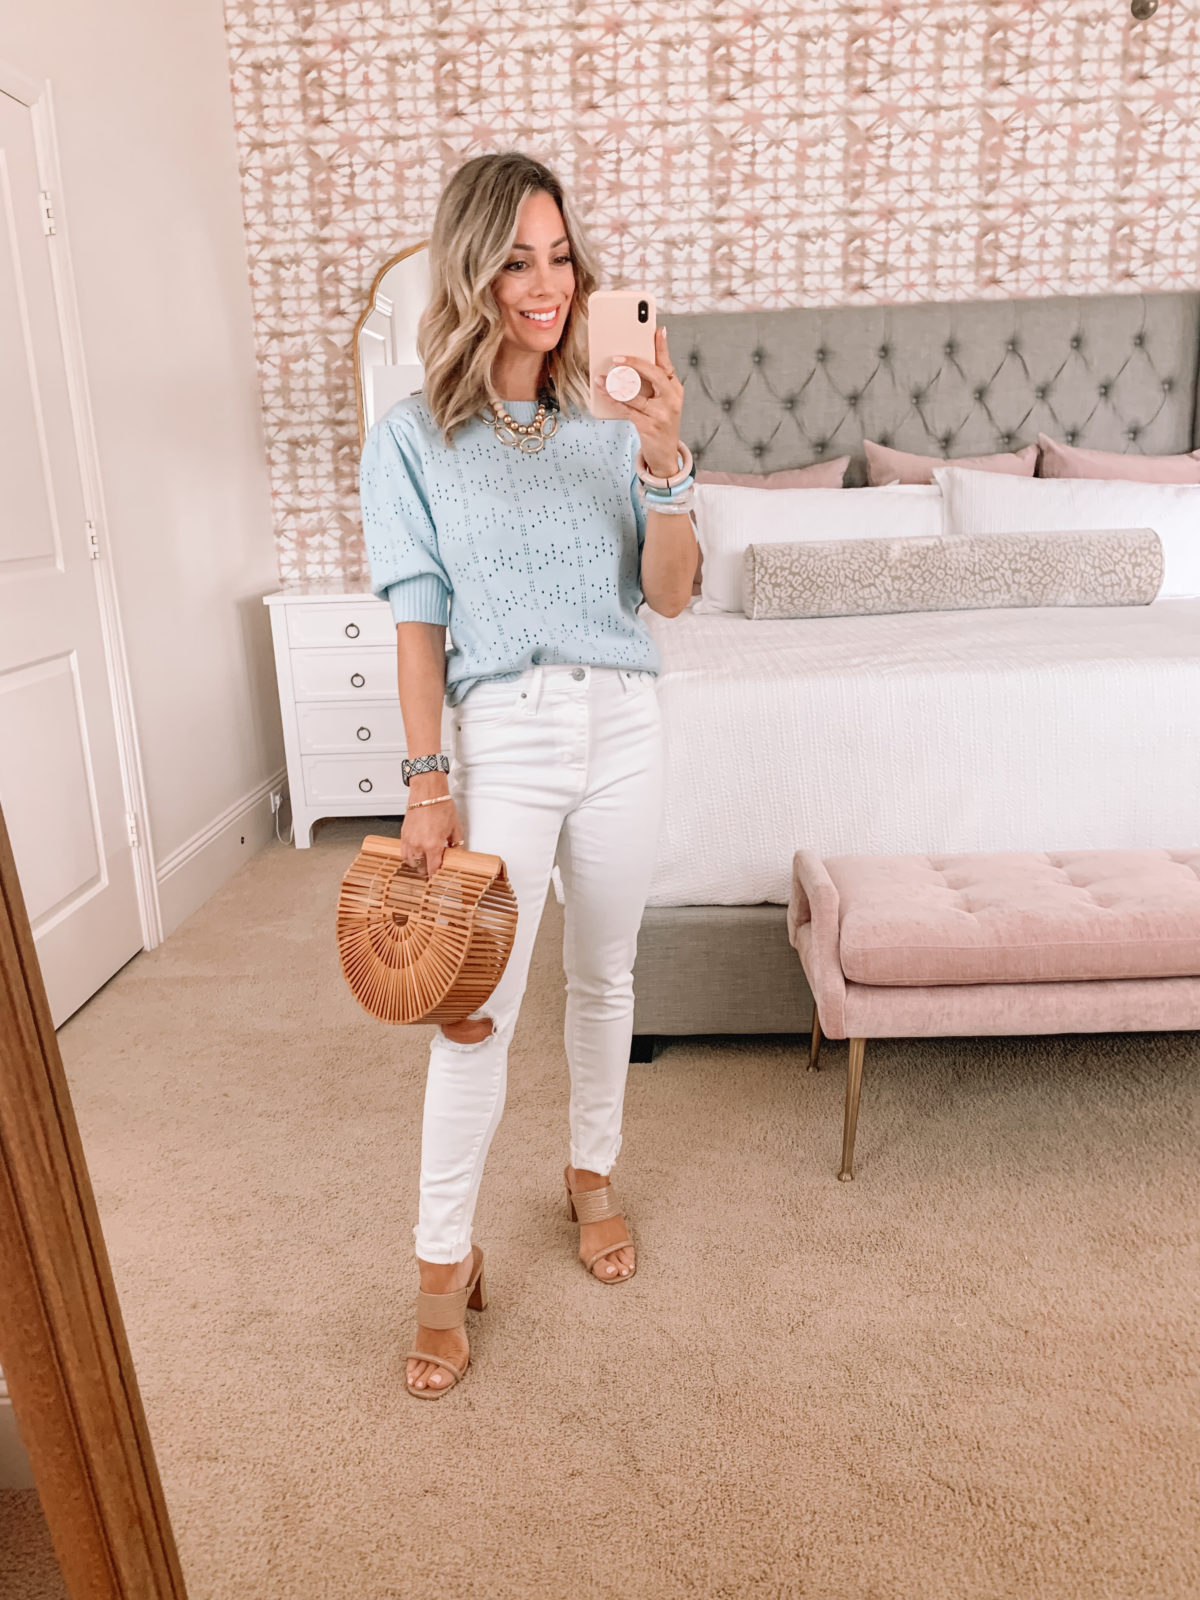 Amazon Fashion Faves, Blue Sweater Short Sleeved, Jeans, Bamboo Clutch